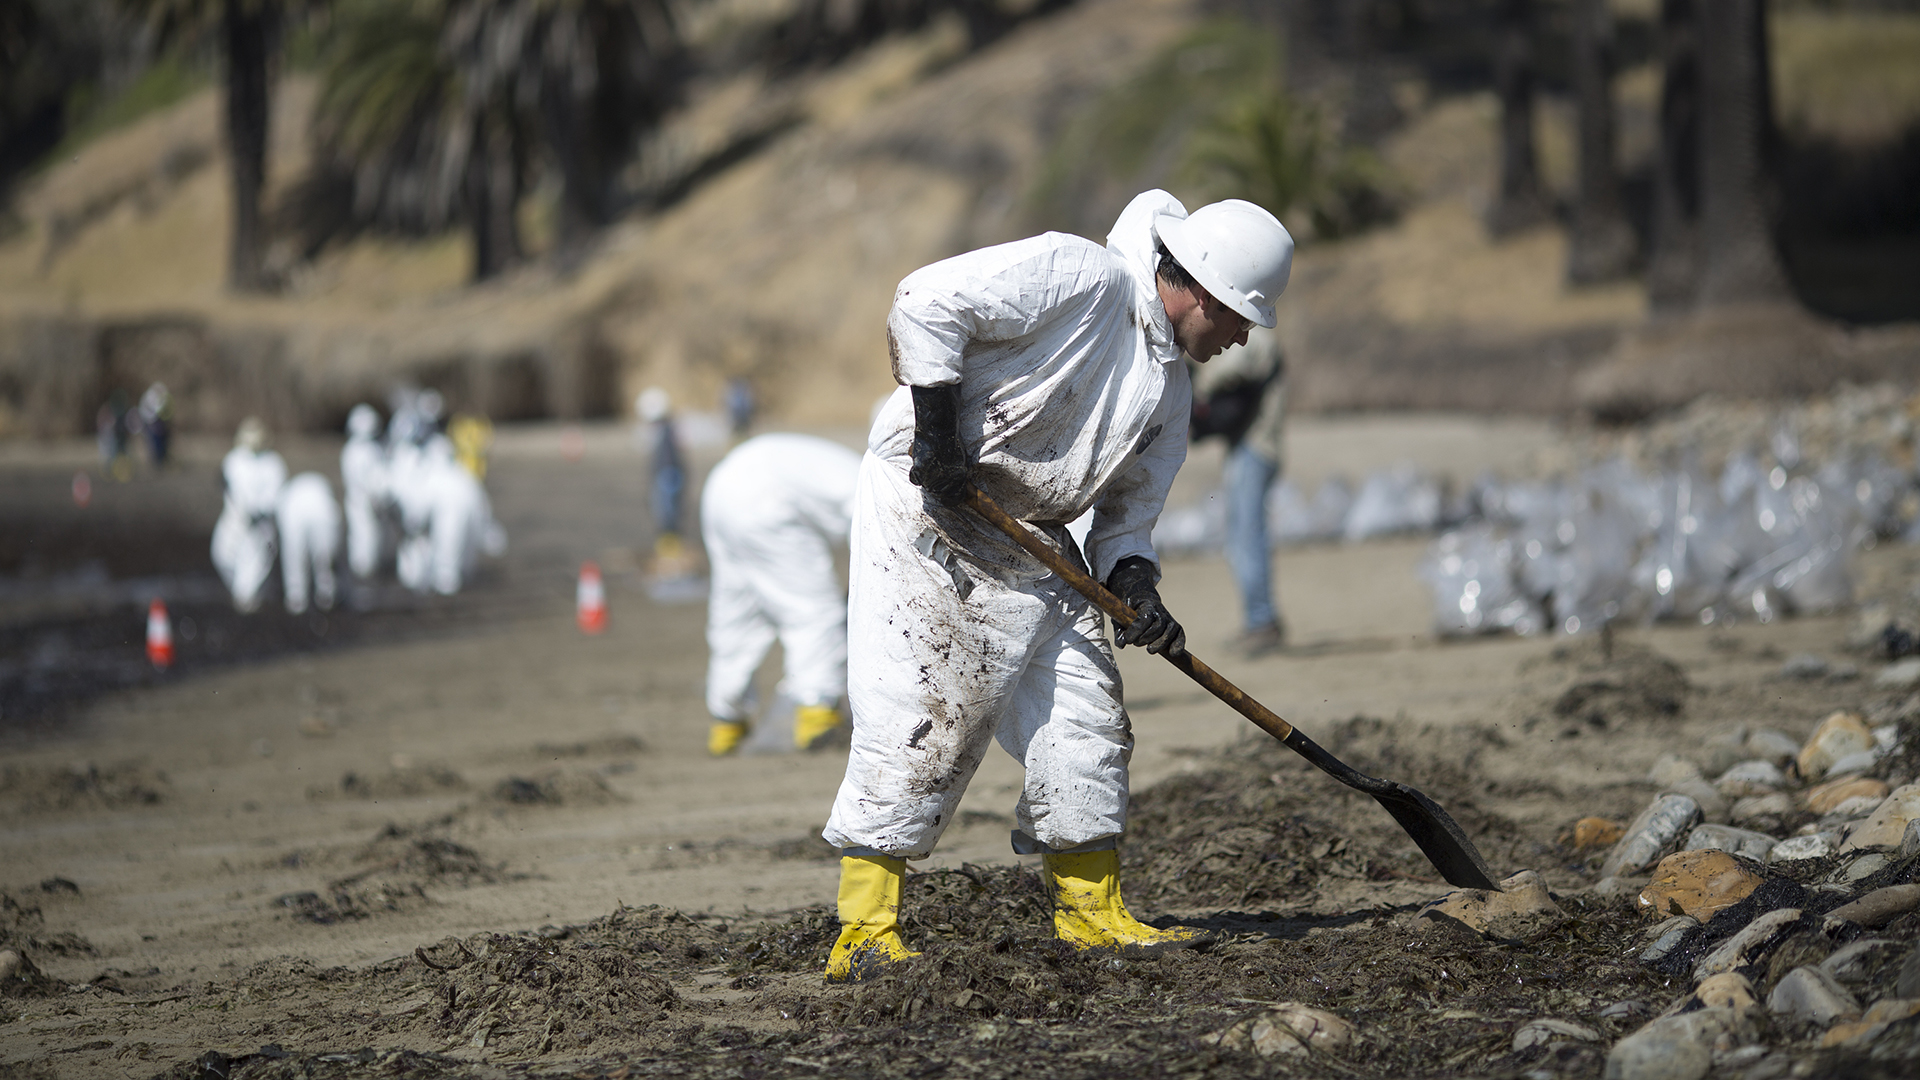 Know Right Now: California Governor Declares State of Emergency After Oil Spill